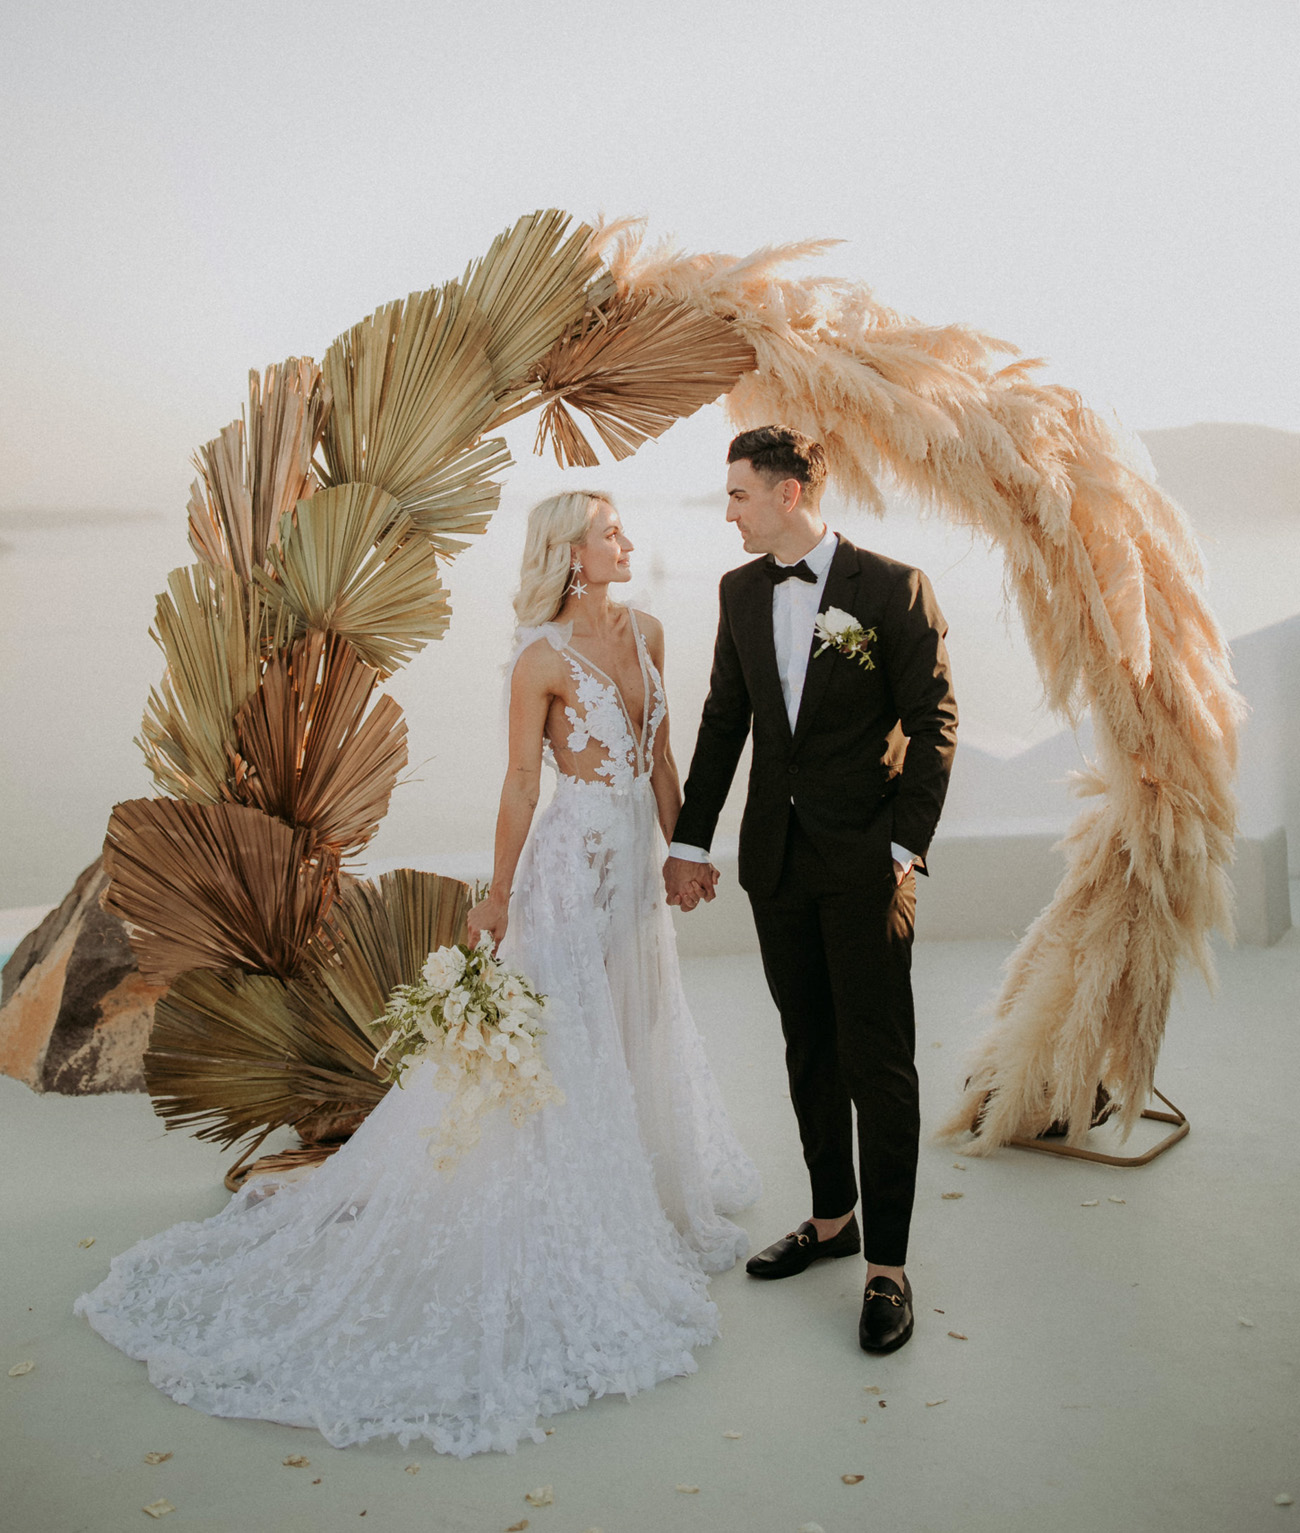 palm and pampass backdrop for a elopement destination wedding